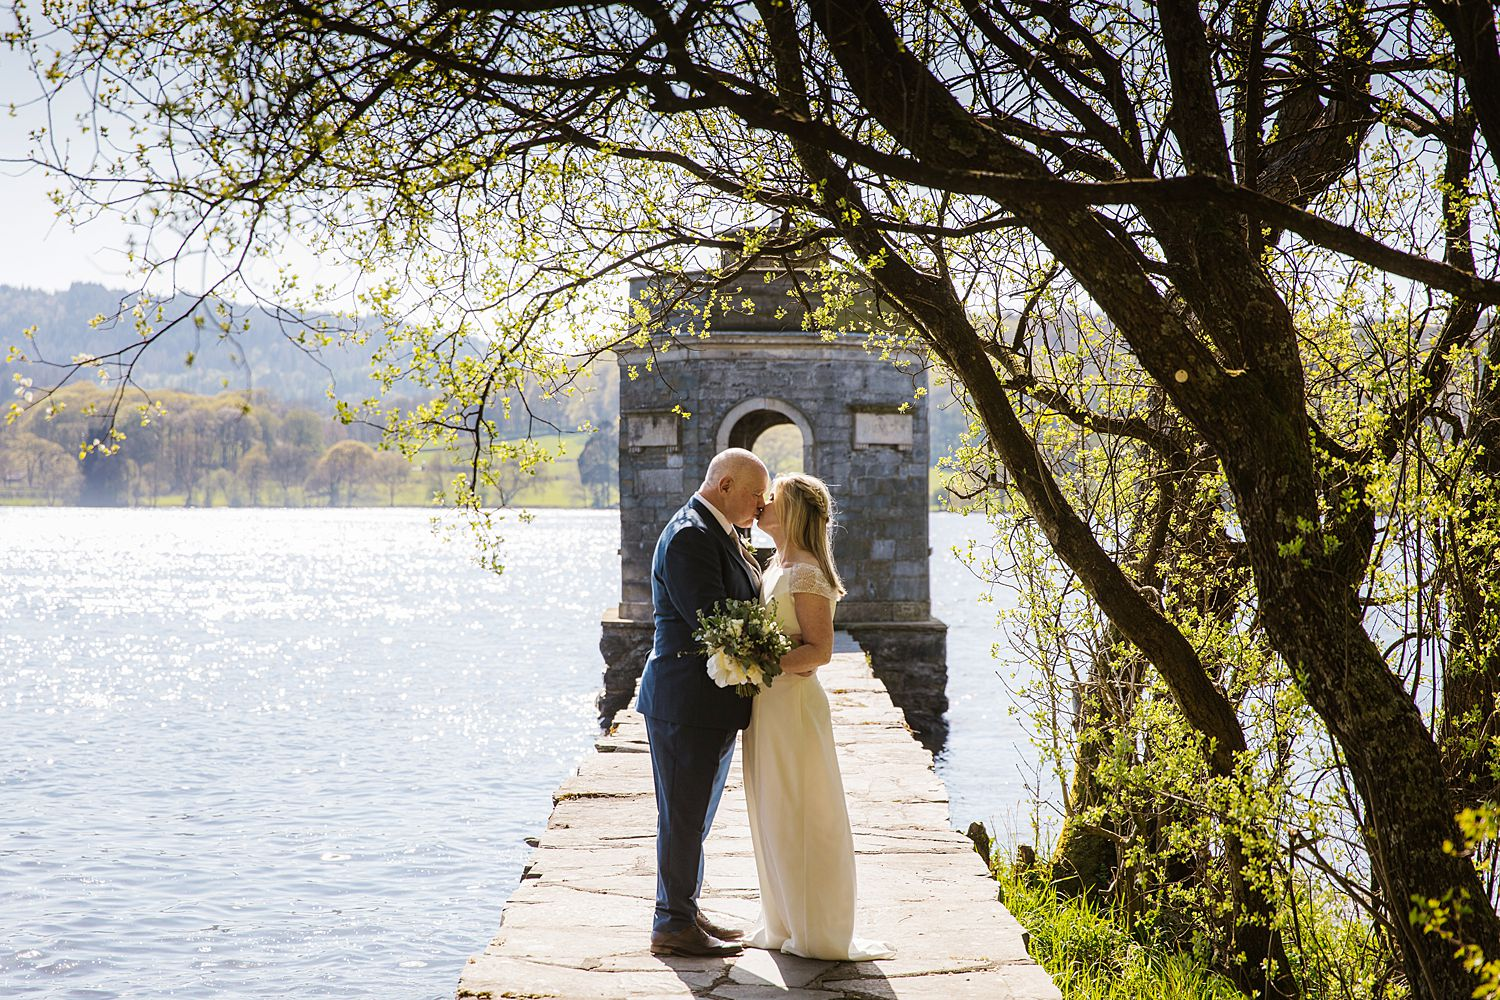 Bride and groom kissing on jetty at Storrs Hall, Bowness on Windermere